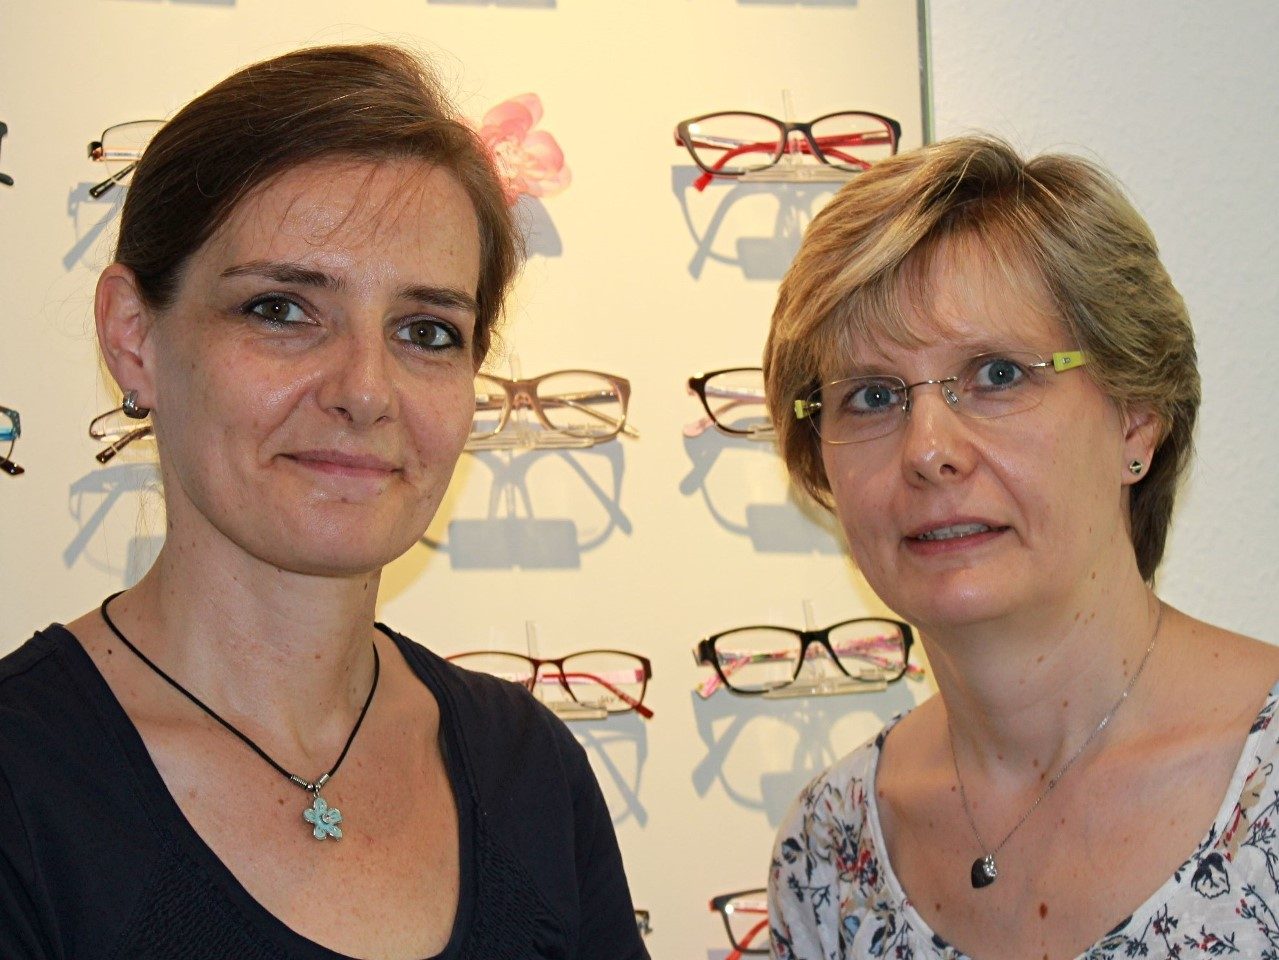 Manuela Krug & Bettina Hennig